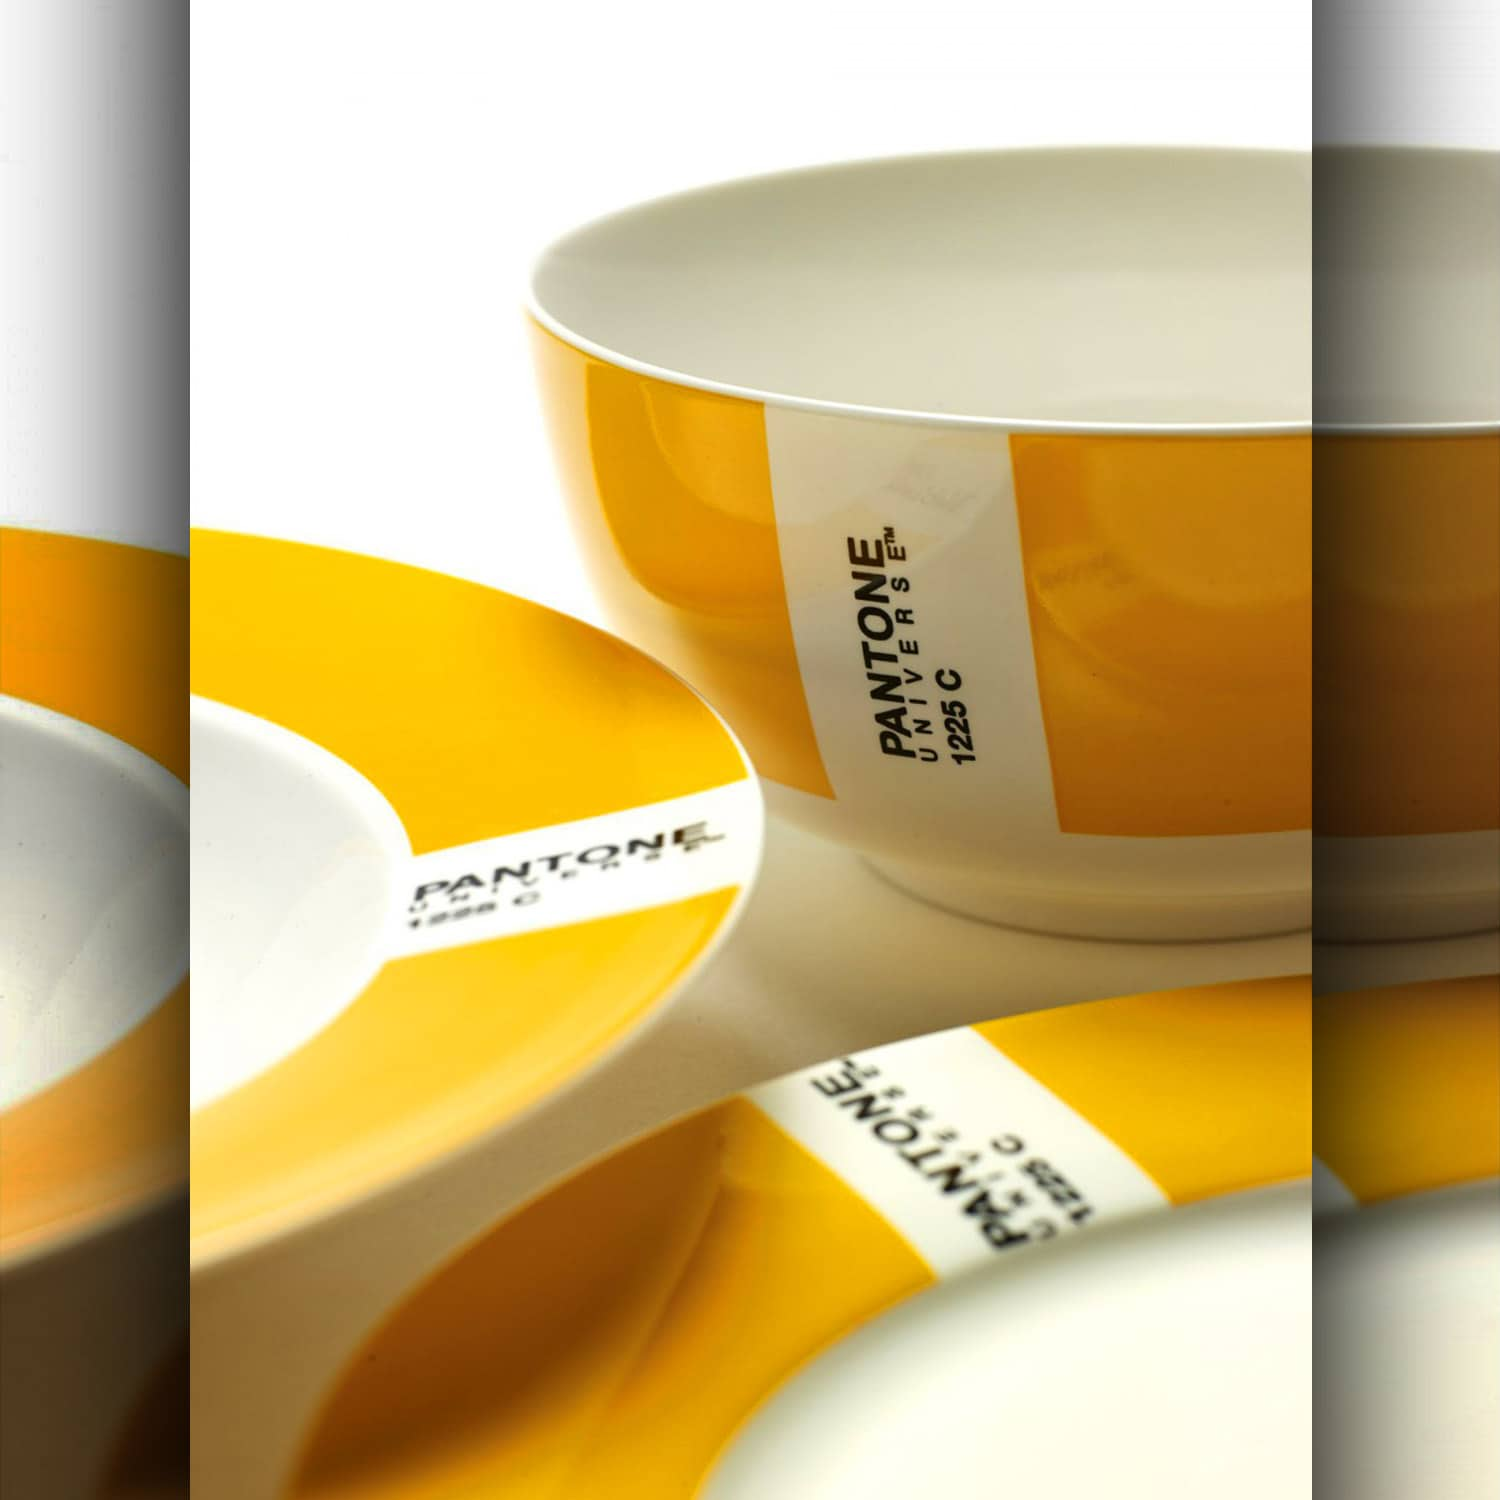 Plate pantone ball - yellow